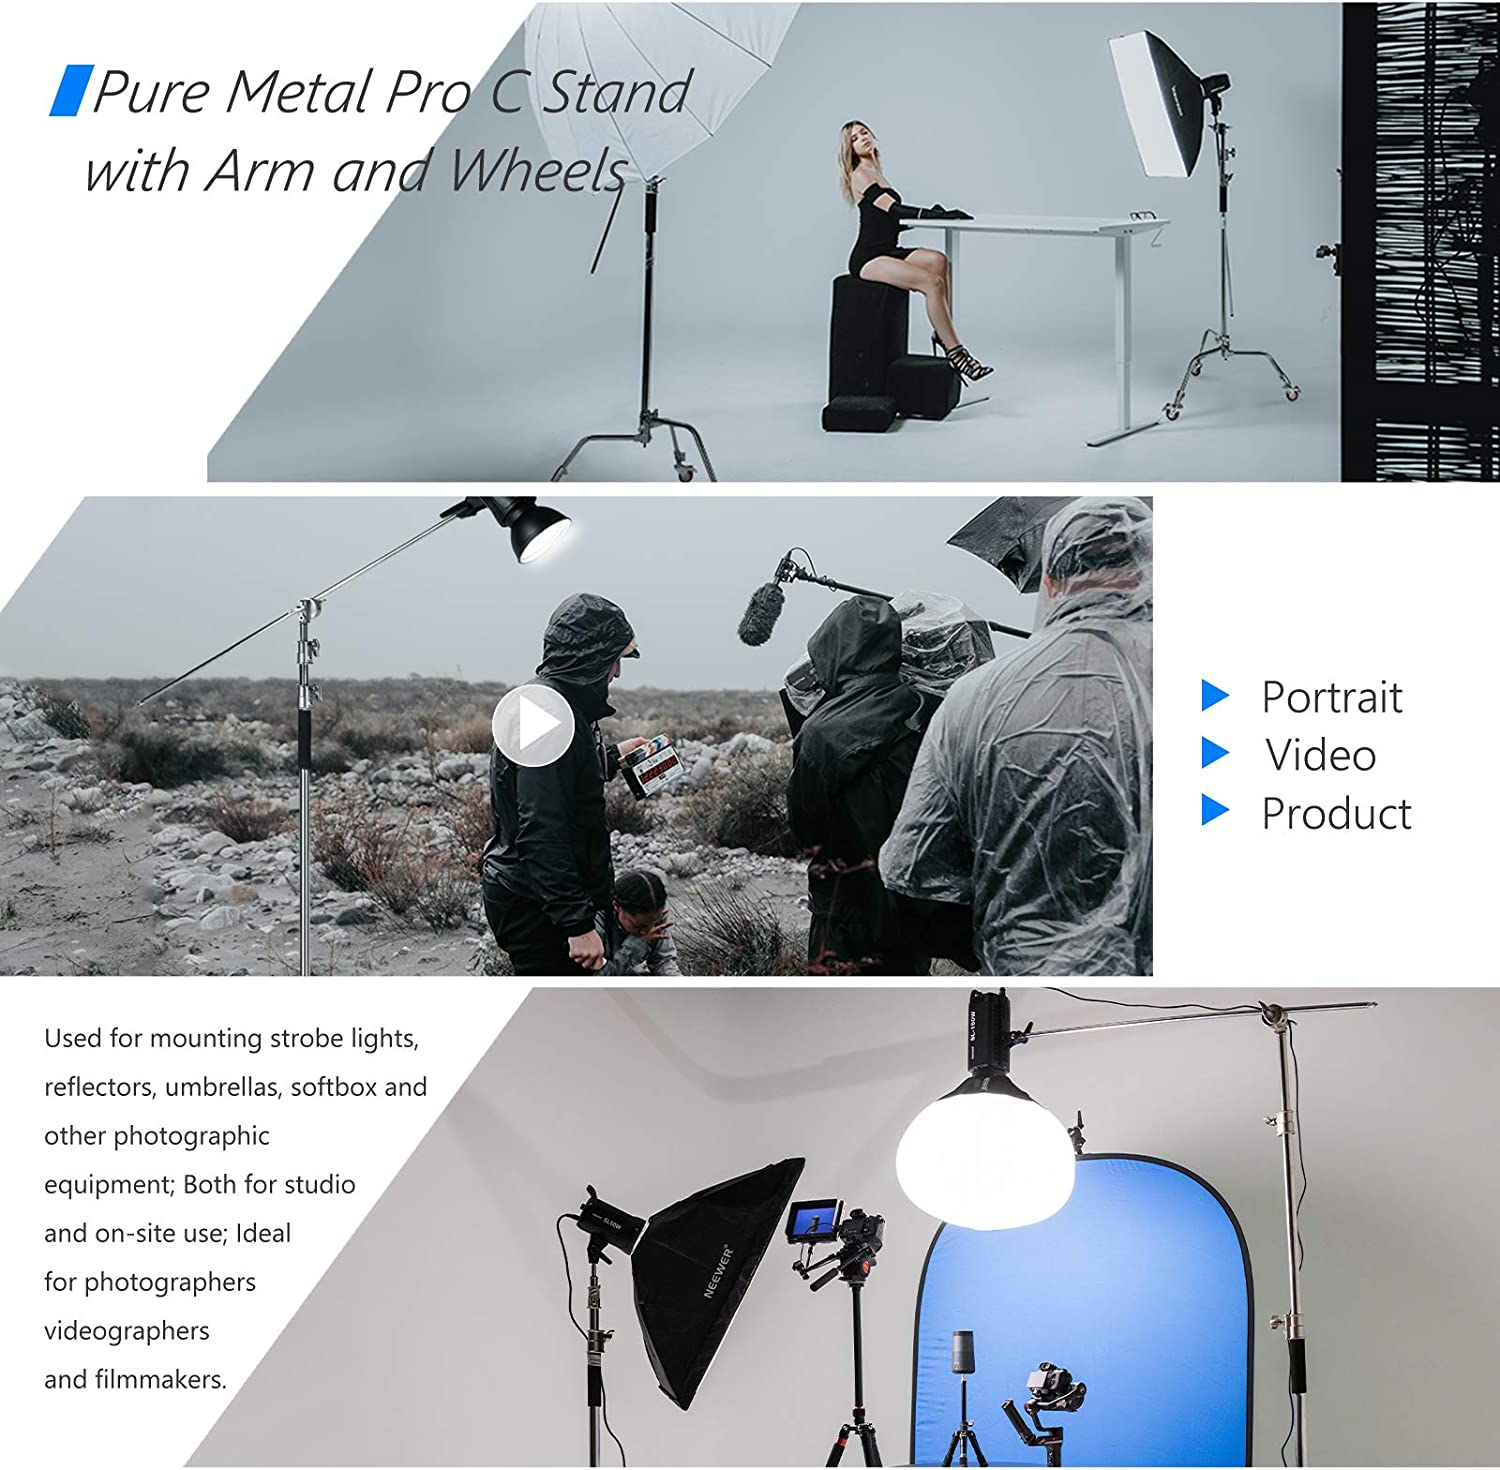 etc Monolight Max Neewer Pro 100/% Metal C Stand Light Stand with Wheels Height 10.8ft//330cm Adjustable Reflector Stand with 4ft//120cm Boom Arm /& 3 Pulleys for Photo Studio Video Reflector